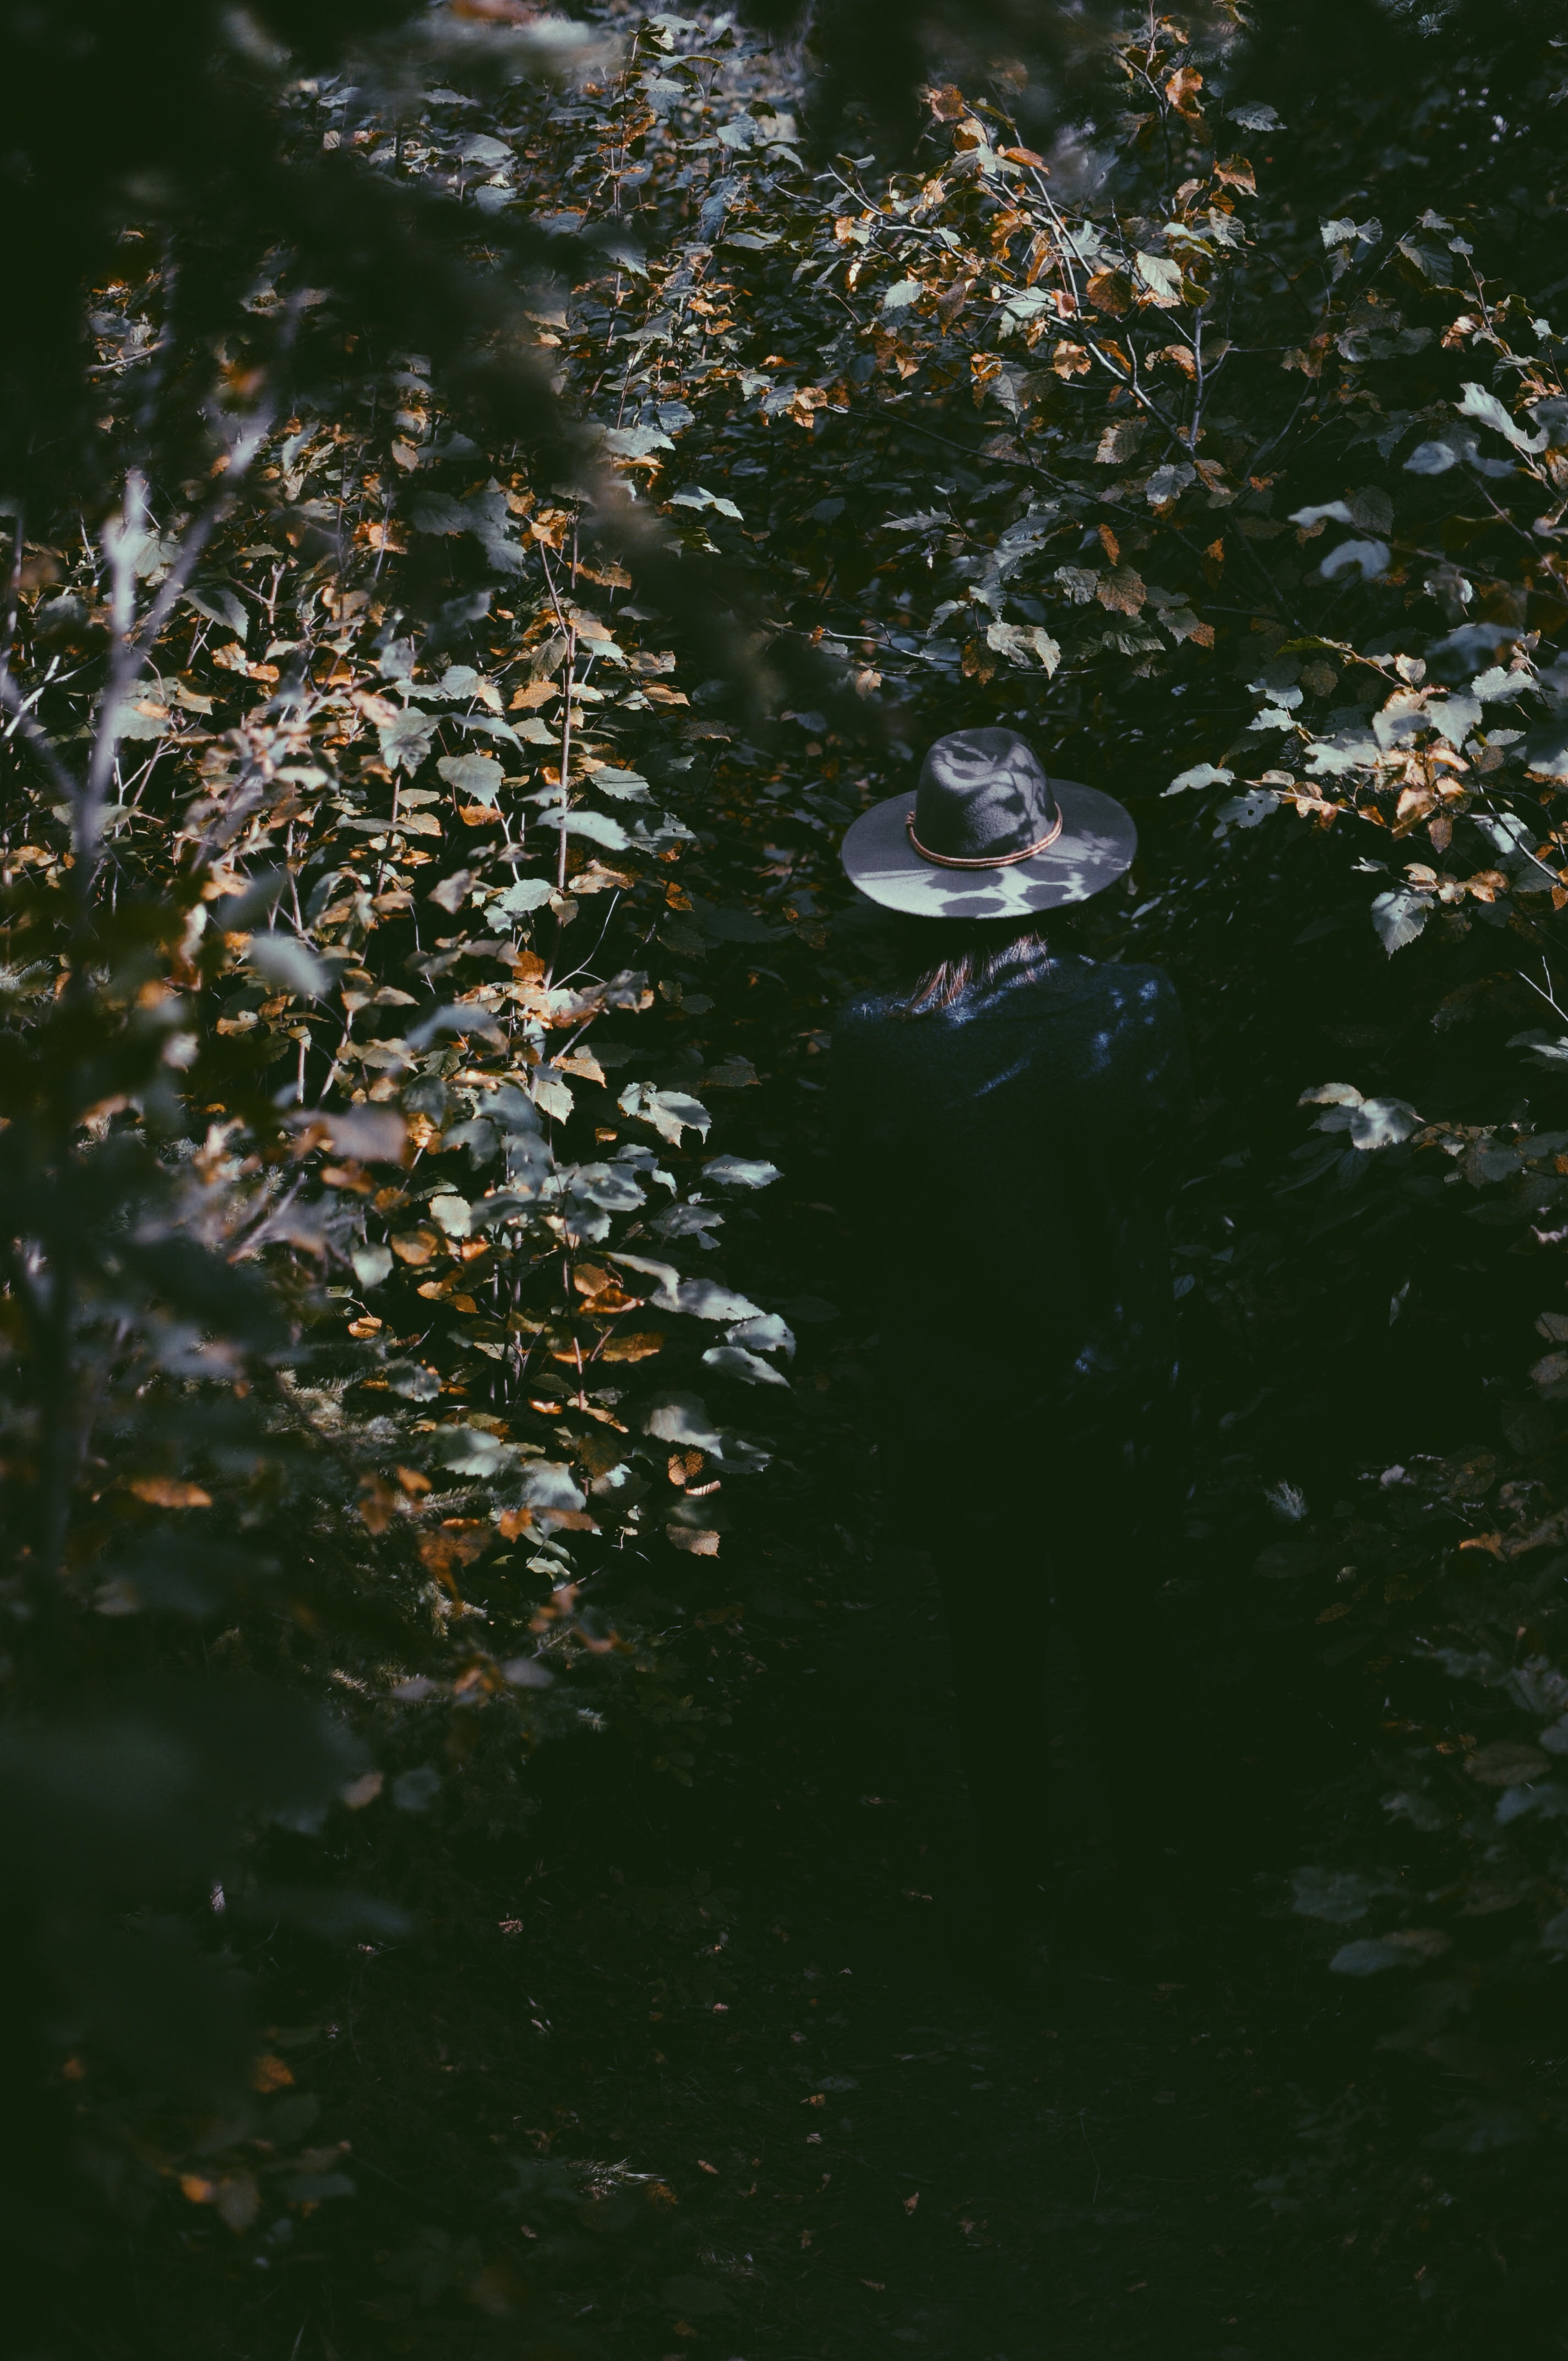 A hat sitting on a fence, surrounded by leaves at Mactaggart Sanctuary